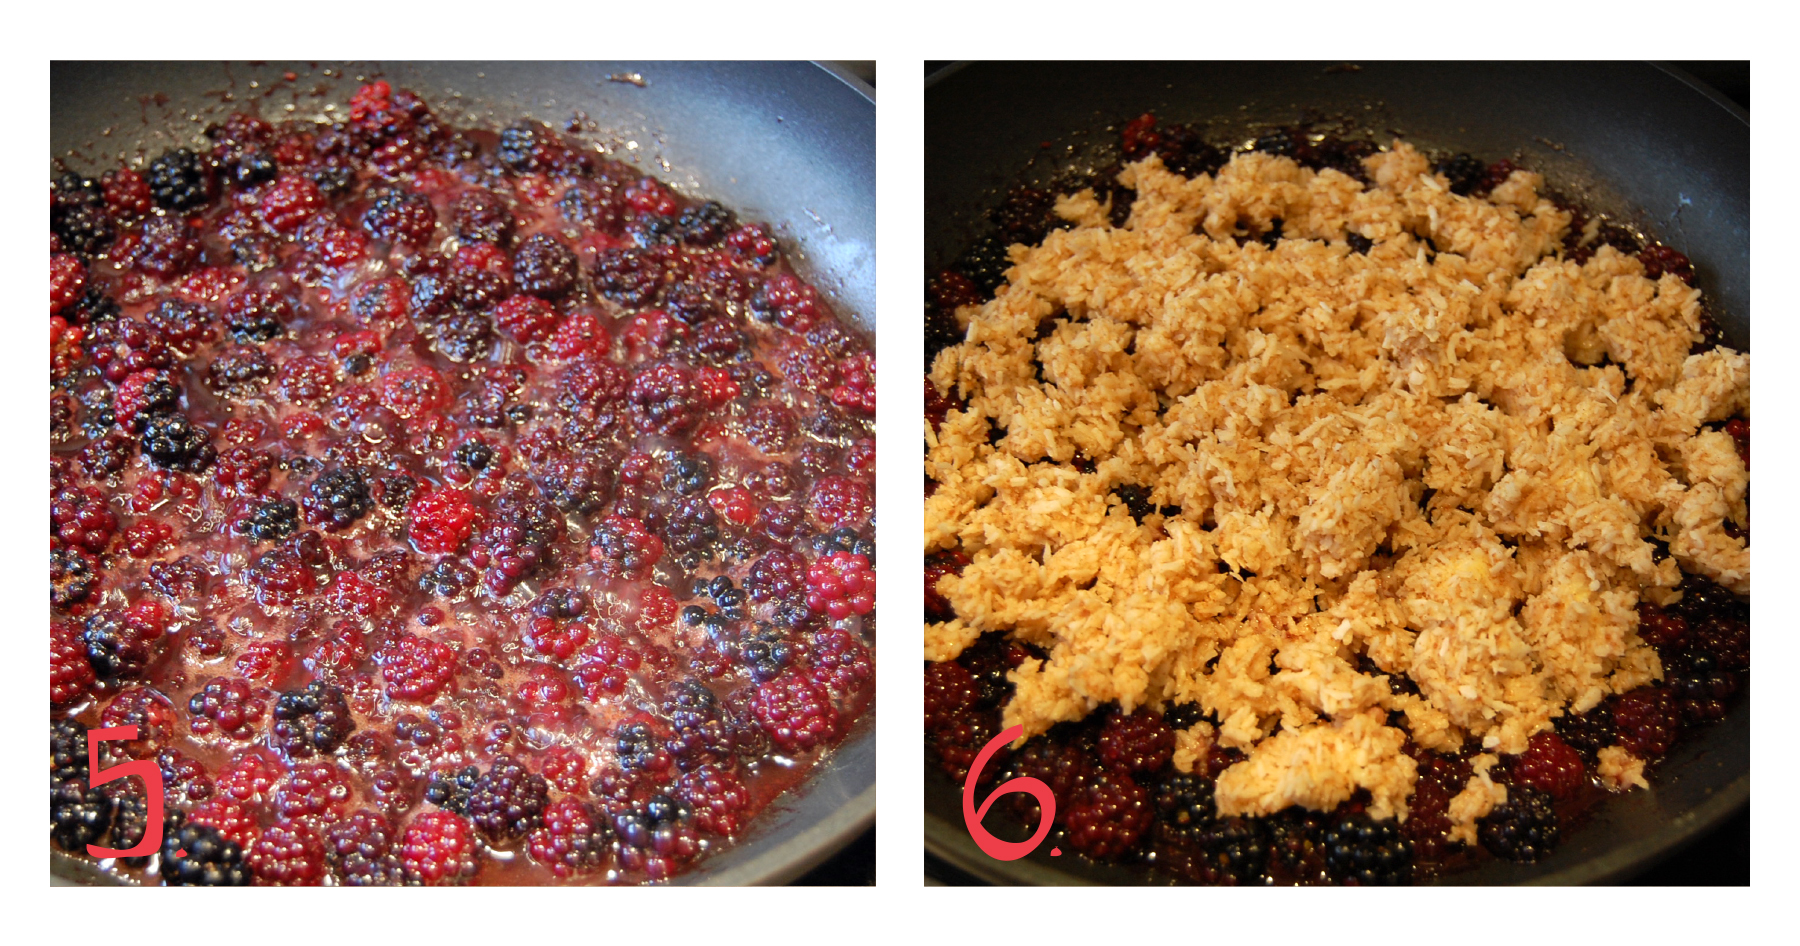 5.  Place the berries in a sauté pan with the maple syrup (make sure you use a sauté pan that can go in the oven). Cook the berries for a few minutes over medium heat, until they start to soften and bubble.   6.  Once the berries are soft, remove from the heat. Place the crumble mixture on top of the berries, leaving a little space around the edge.